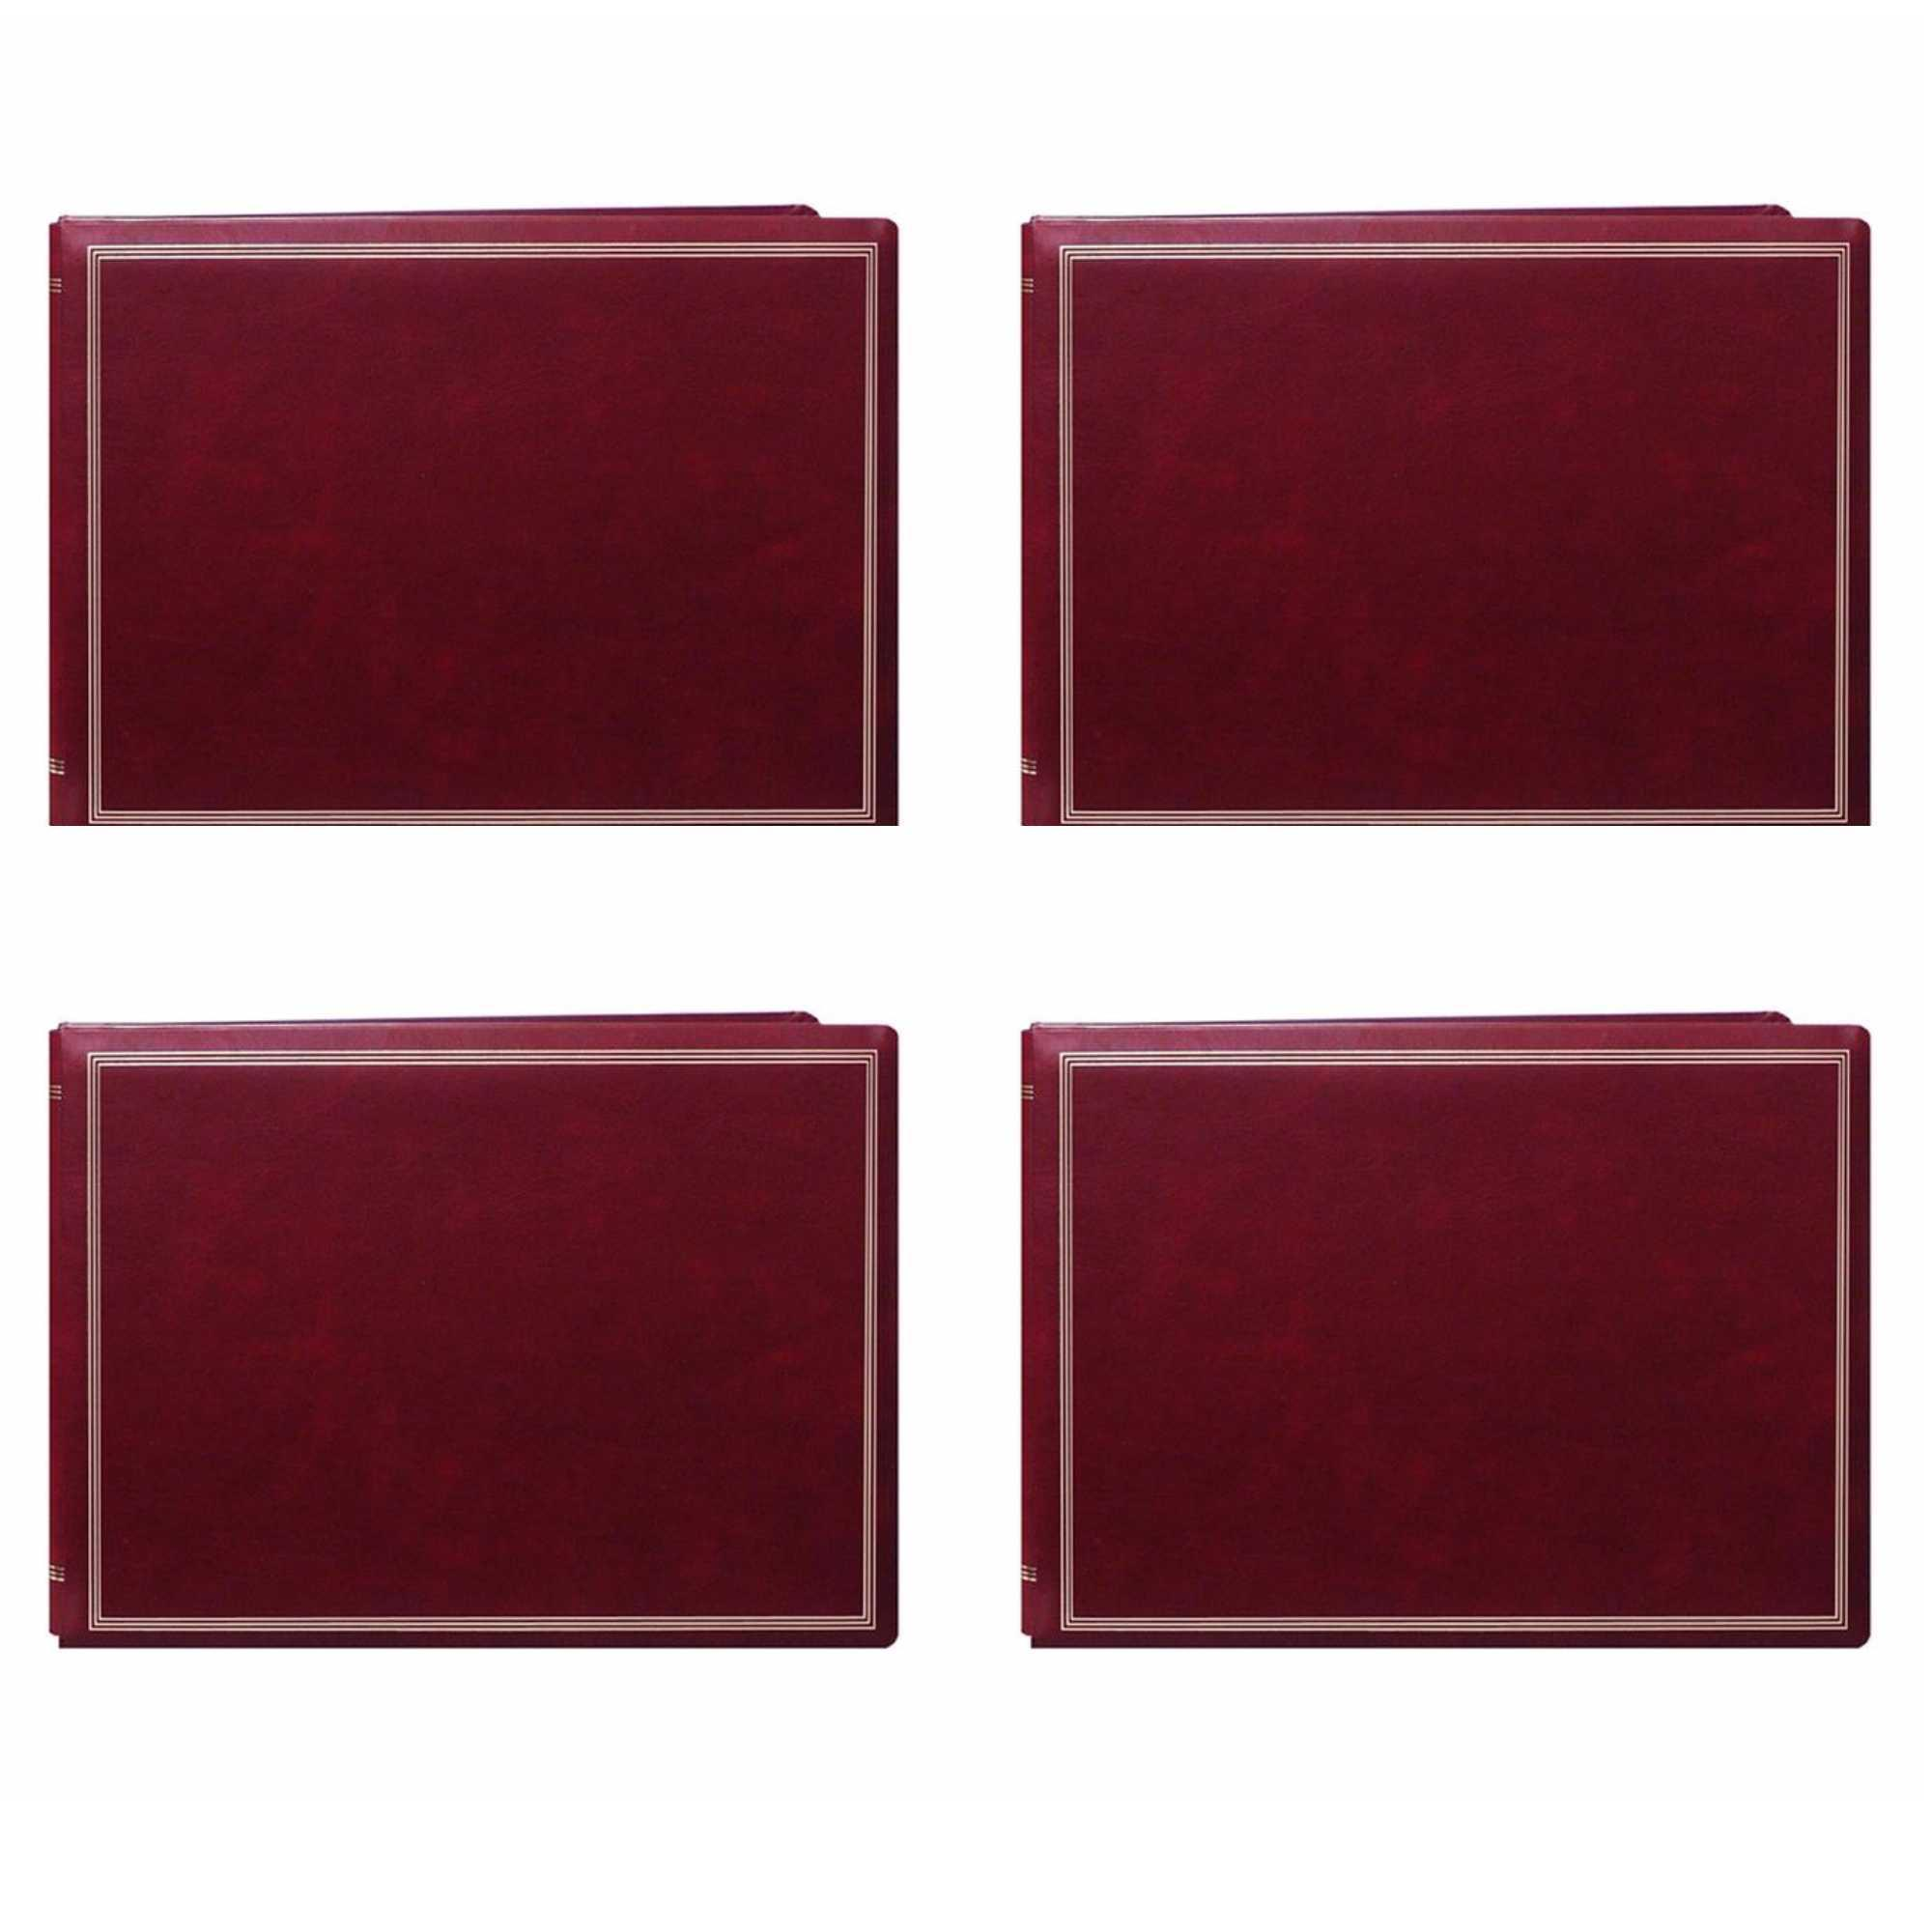 Pioneer Jumbo Magnetic Page X-Pando Photo Album (Burgundy Red) 4-Pack